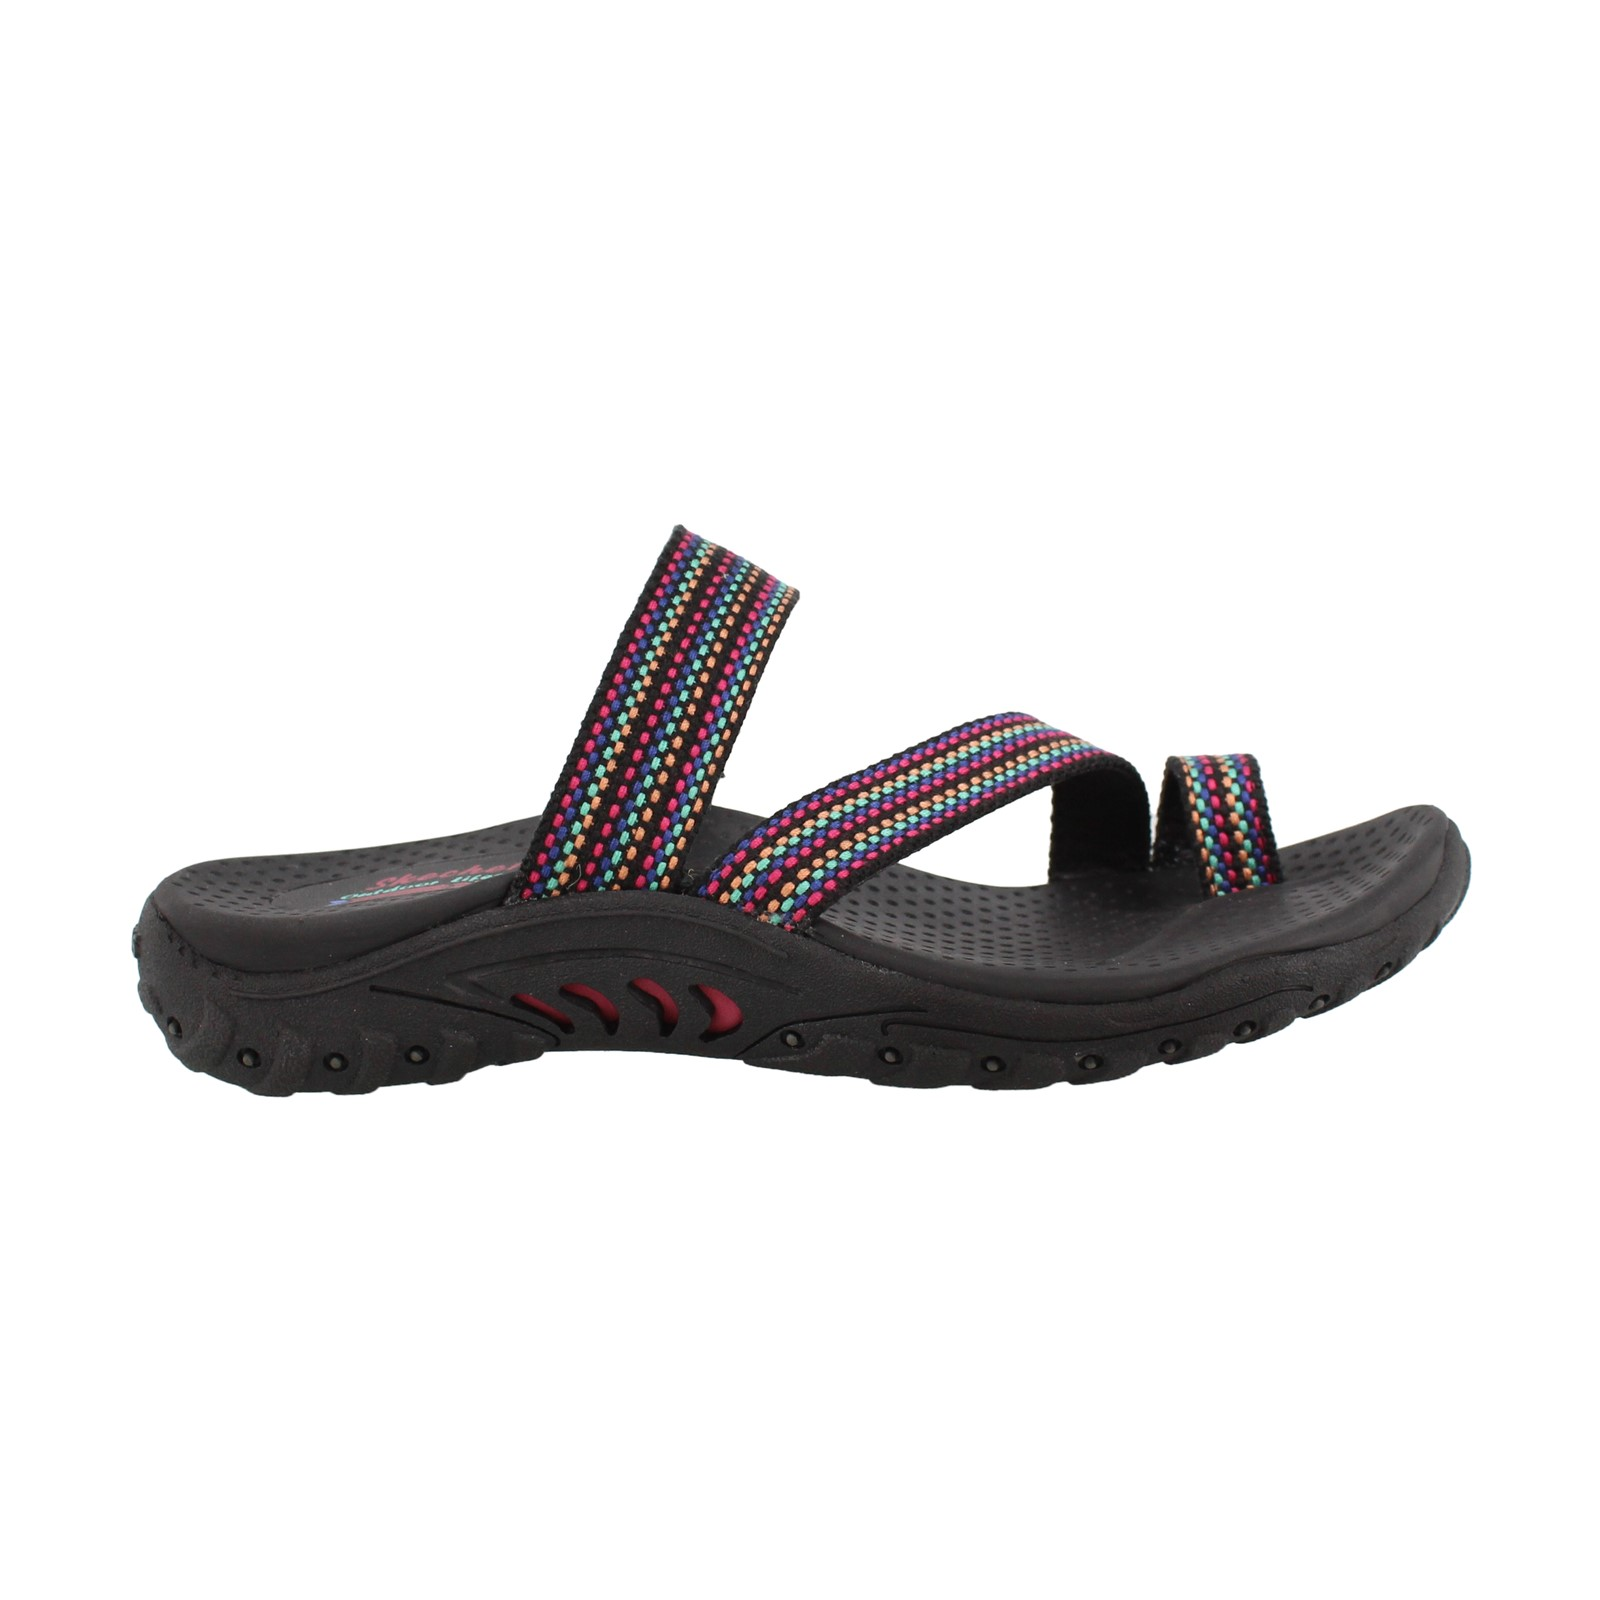 Women's Skechers, Reggae Sarasota Slide Sandals